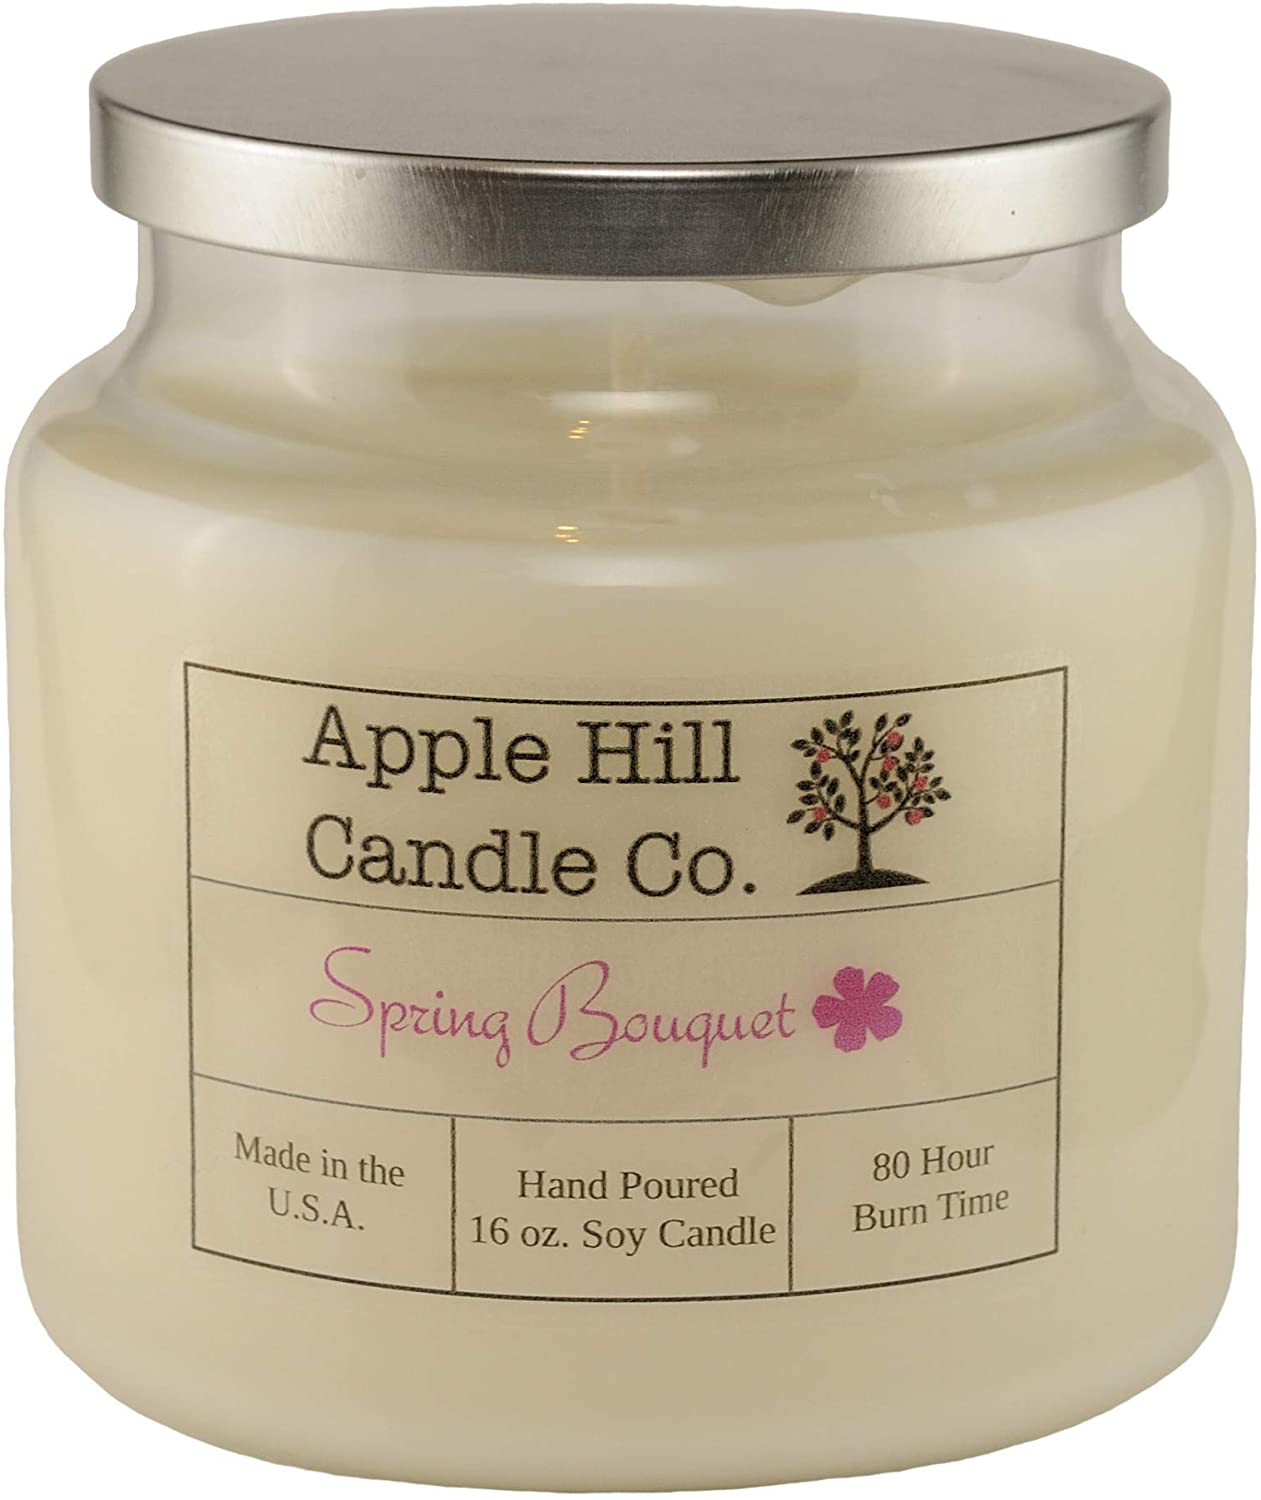 Spring Bouquet (Peony, Magnolia, and Freesia) - 16 oz. Handmade Natural Soy Candle   ~80 Hour Burn Time